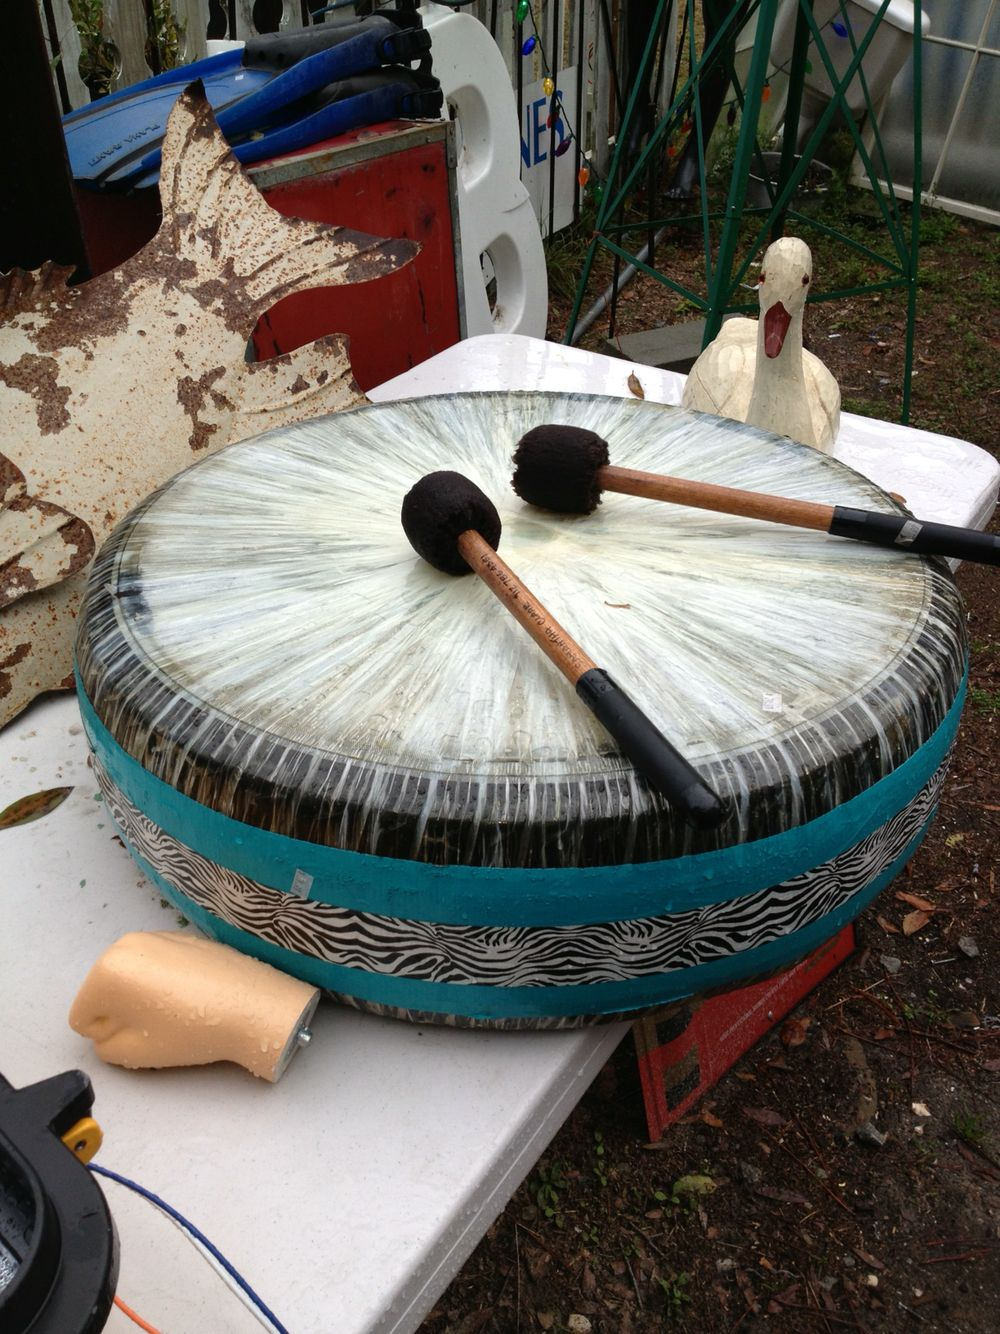 Drum made from a tire, packing tape and duct tape